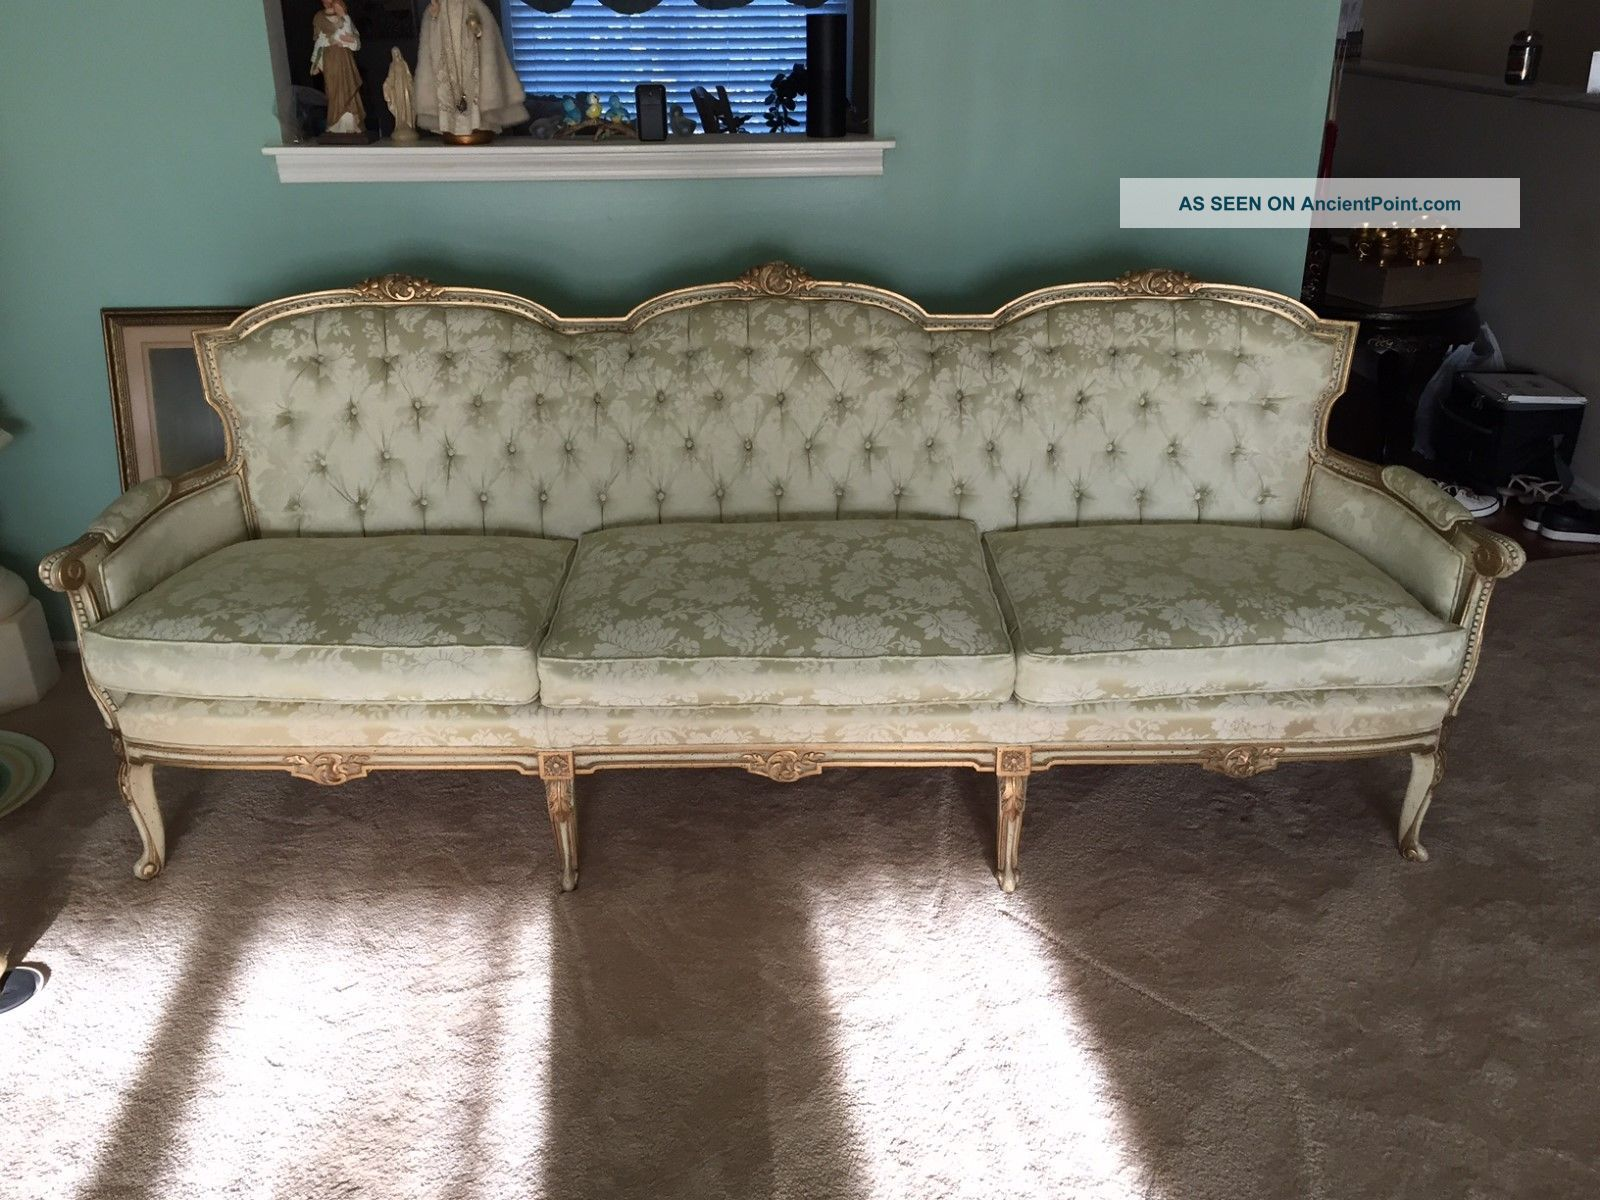 Vintage Tufted French Provincial Sofa 1900-1950 photo